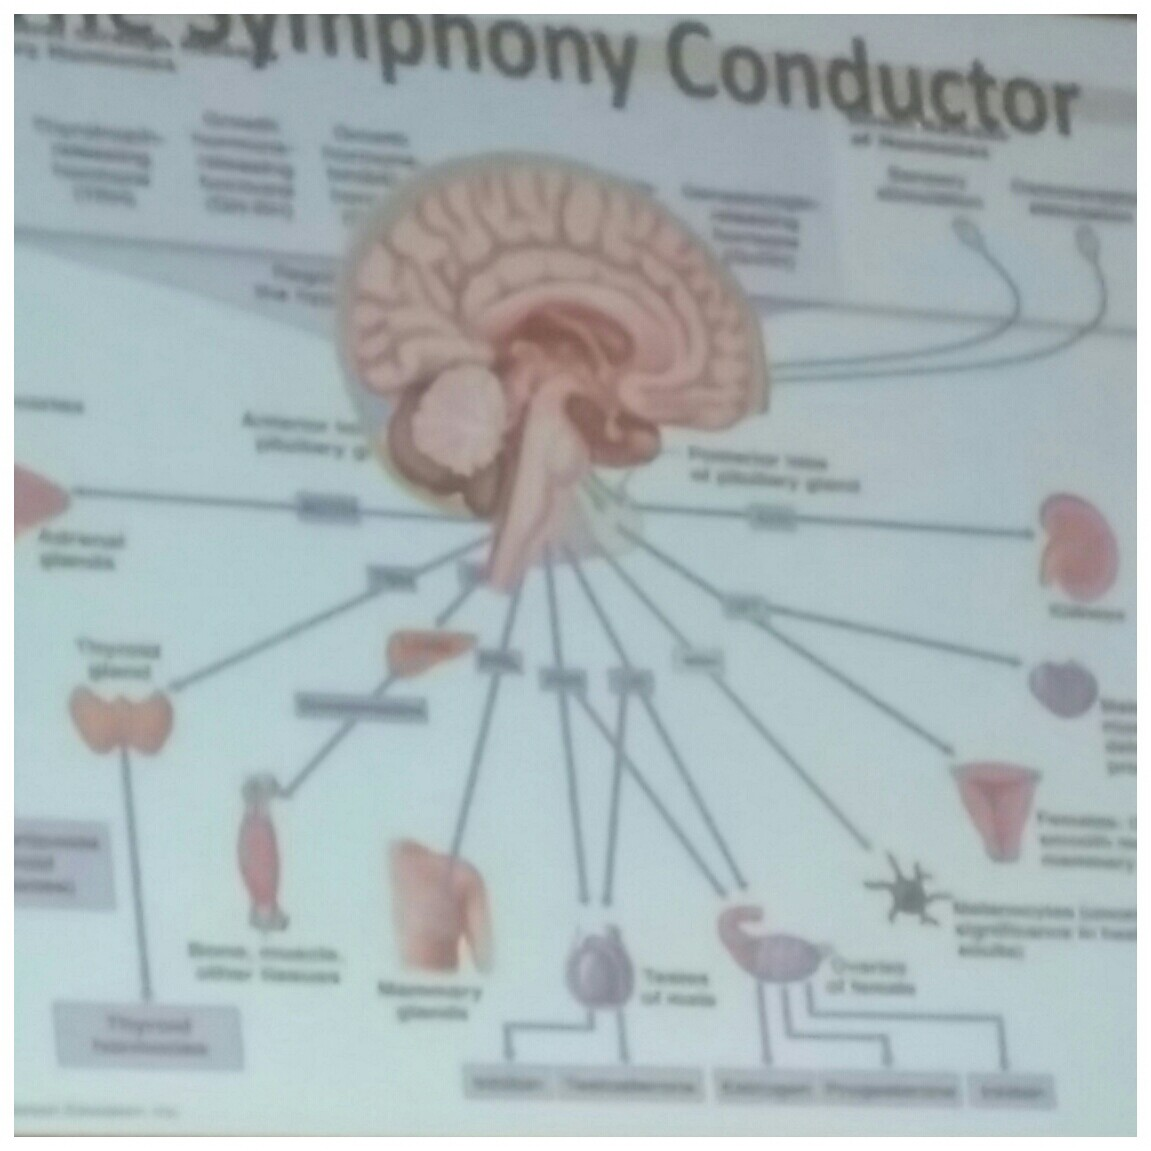 BrainIsSymphonyConductor!